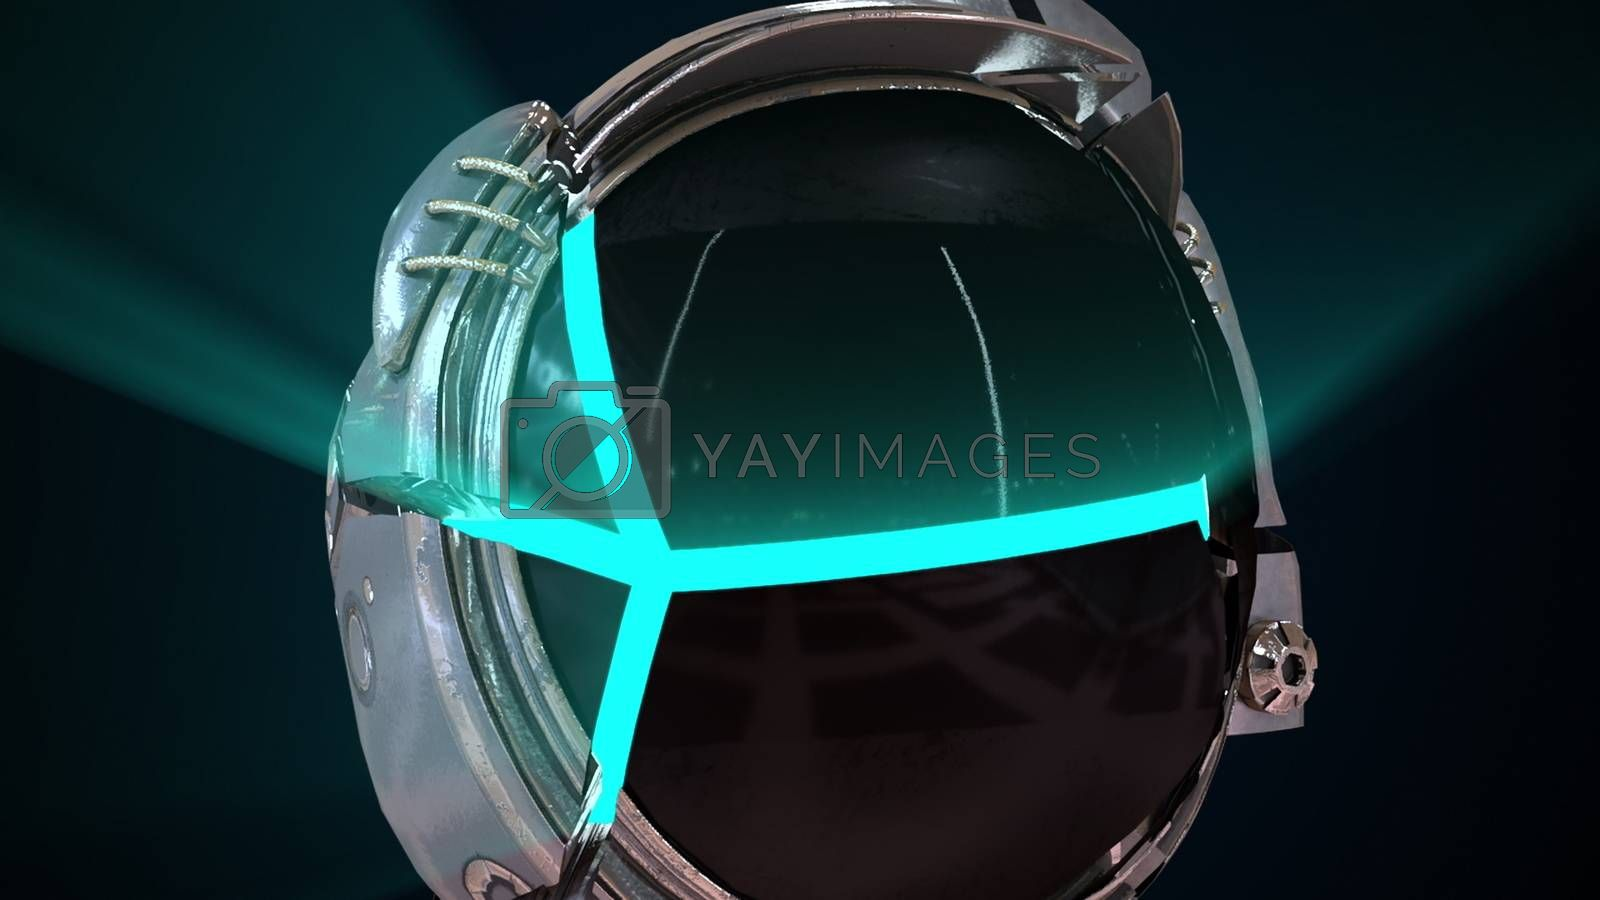 Cosmonaut head in a metal helmet close-up with neon light from the inside. Computer generated space background, 3d rendering